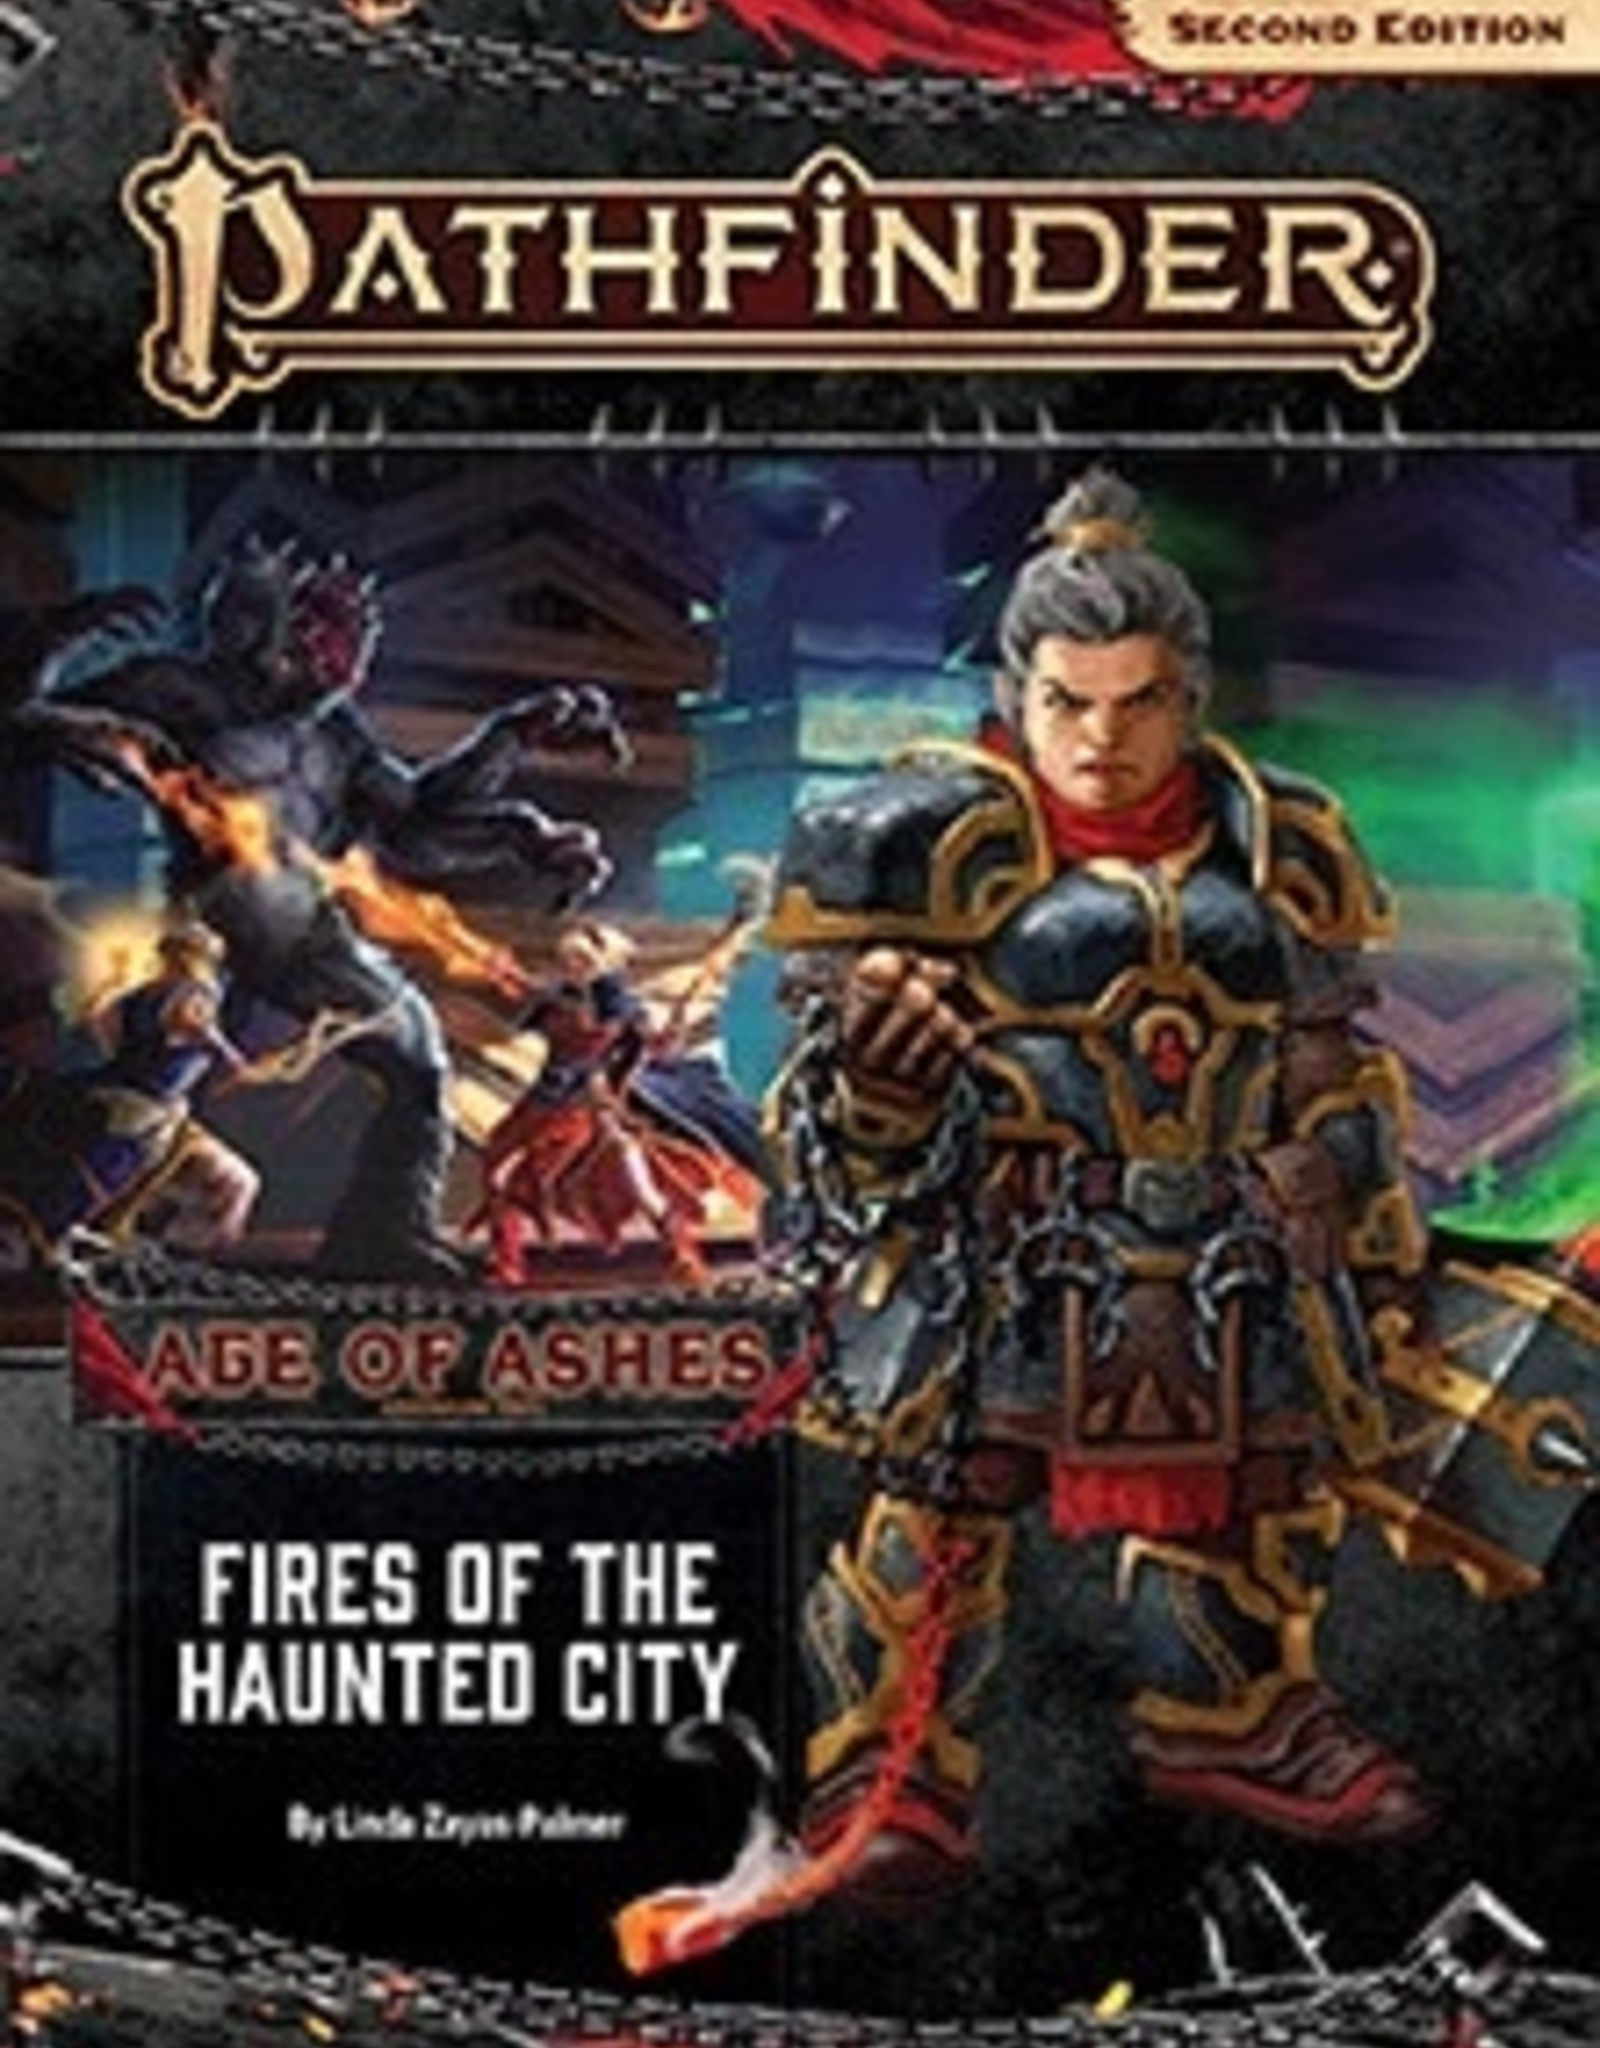 Paizo Publishing Pathfinder 2nd Edition Age of Ashes Part 4 of 6 Fires of the Haunted City